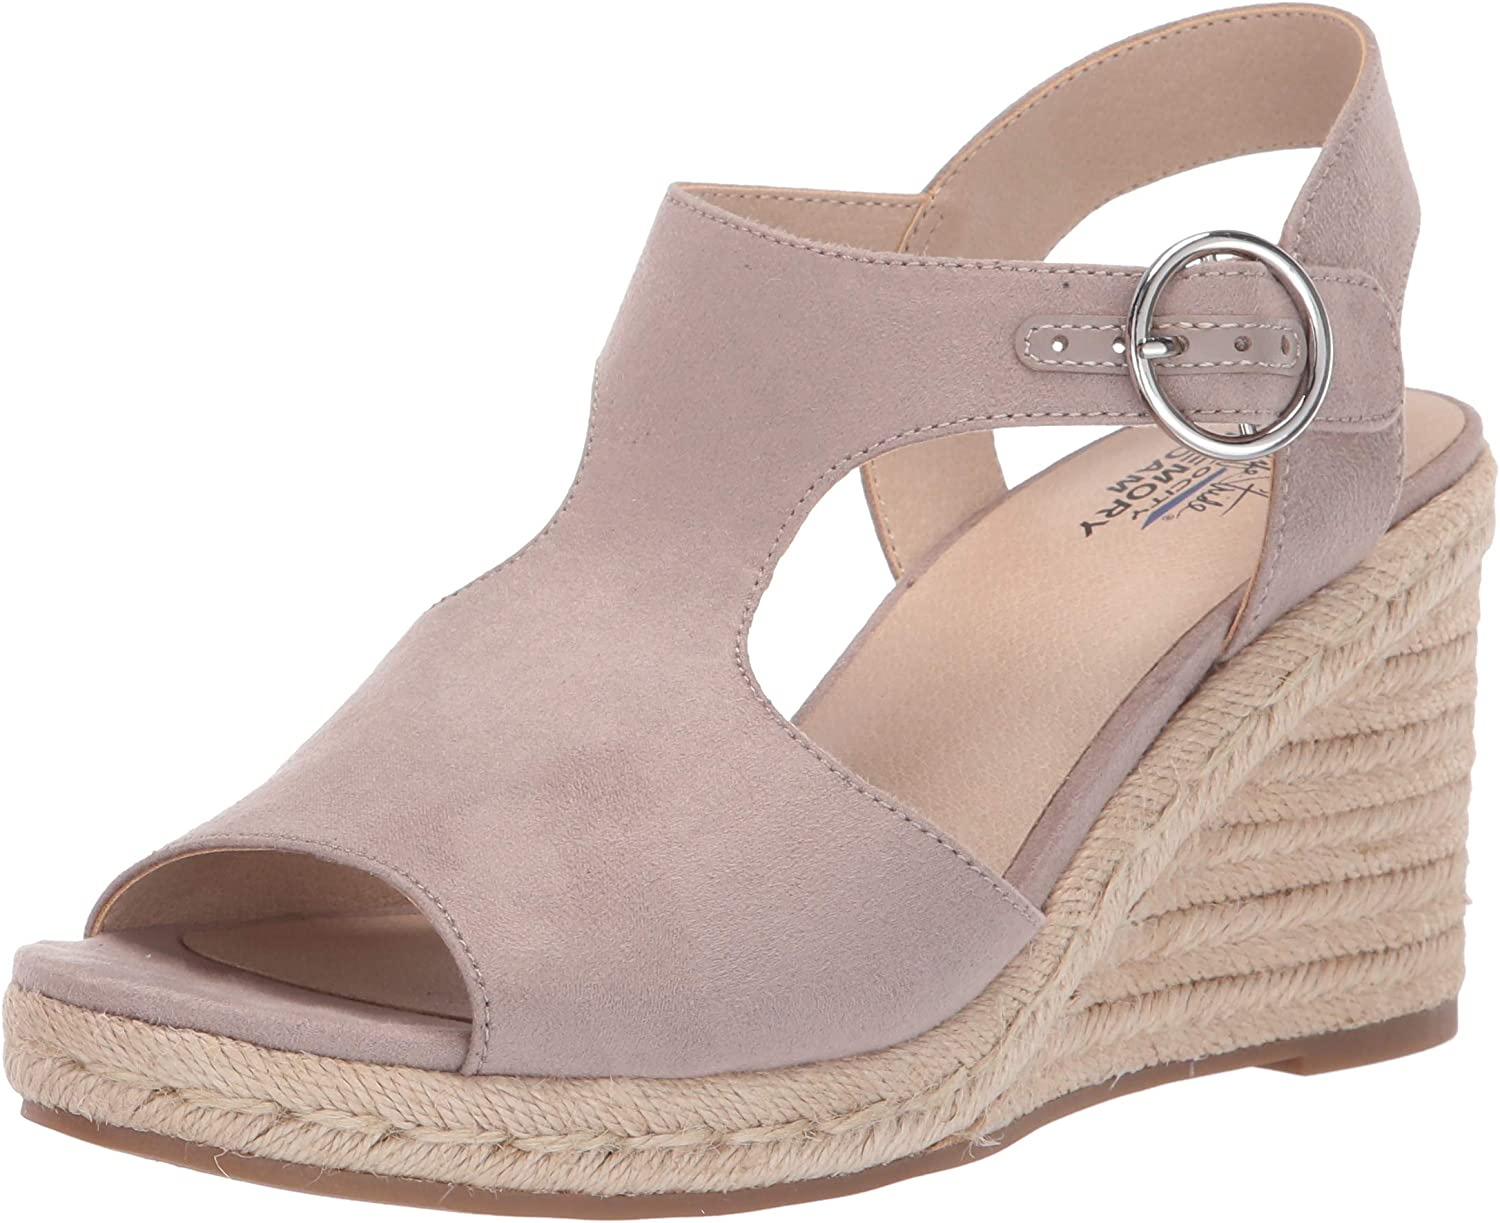 LifeStride Women's Tyra Recommendation Sandal Wedge Max 78% OFF